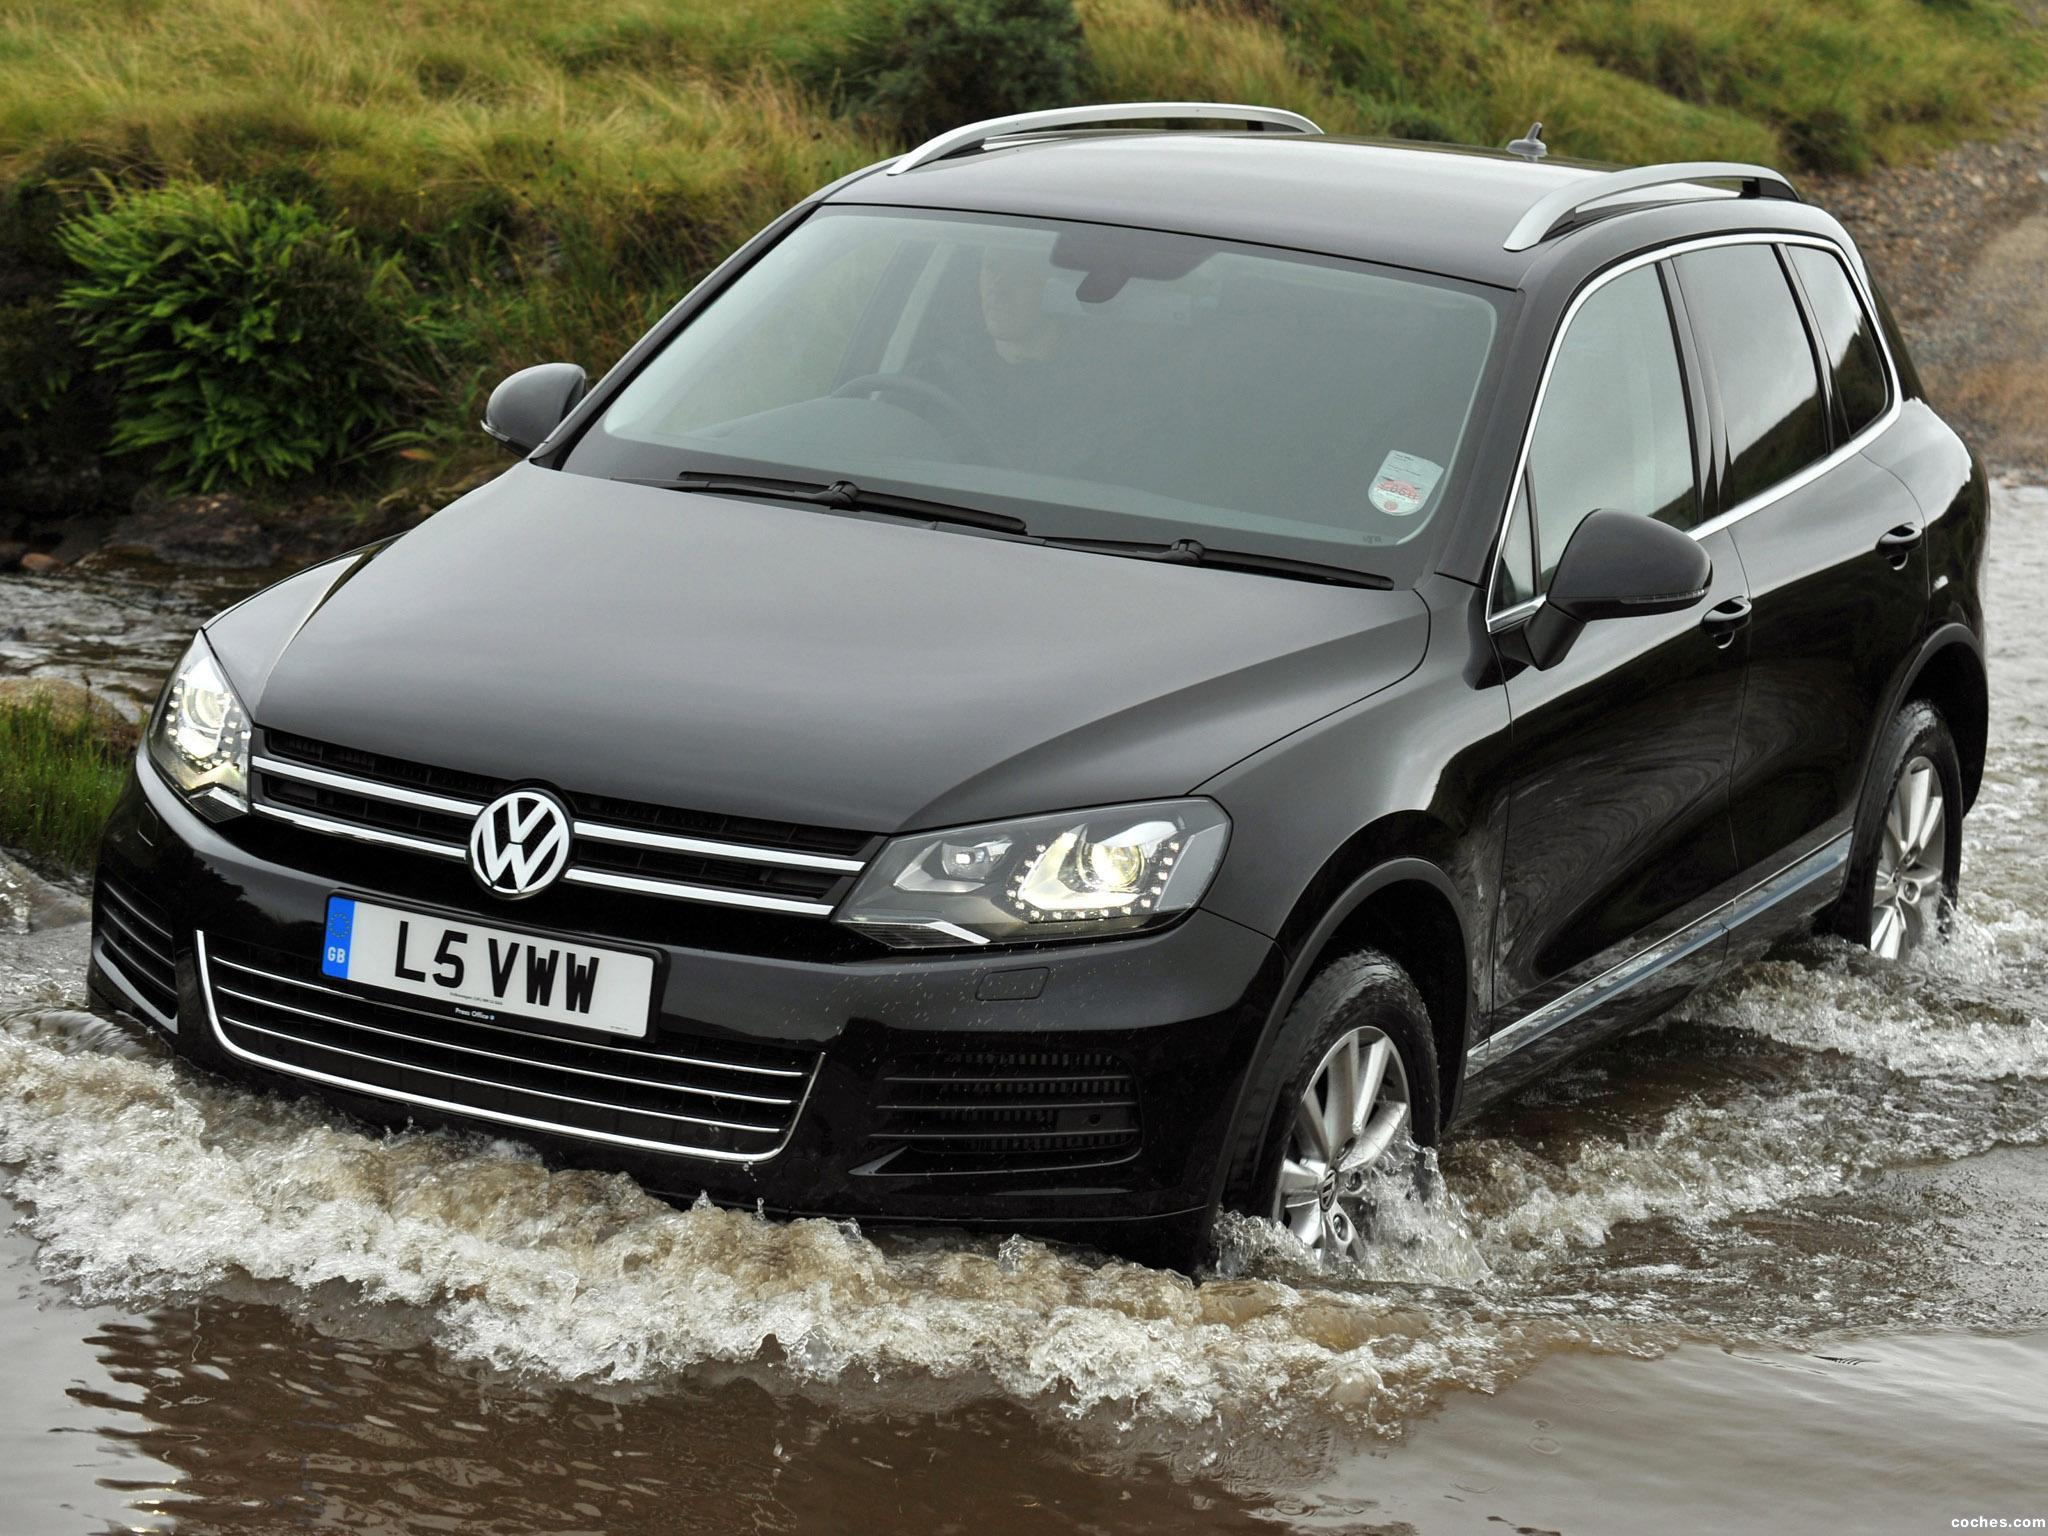 fotos de volkswagen touareg v6 tdi uk 2010. Black Bedroom Furniture Sets. Home Design Ideas